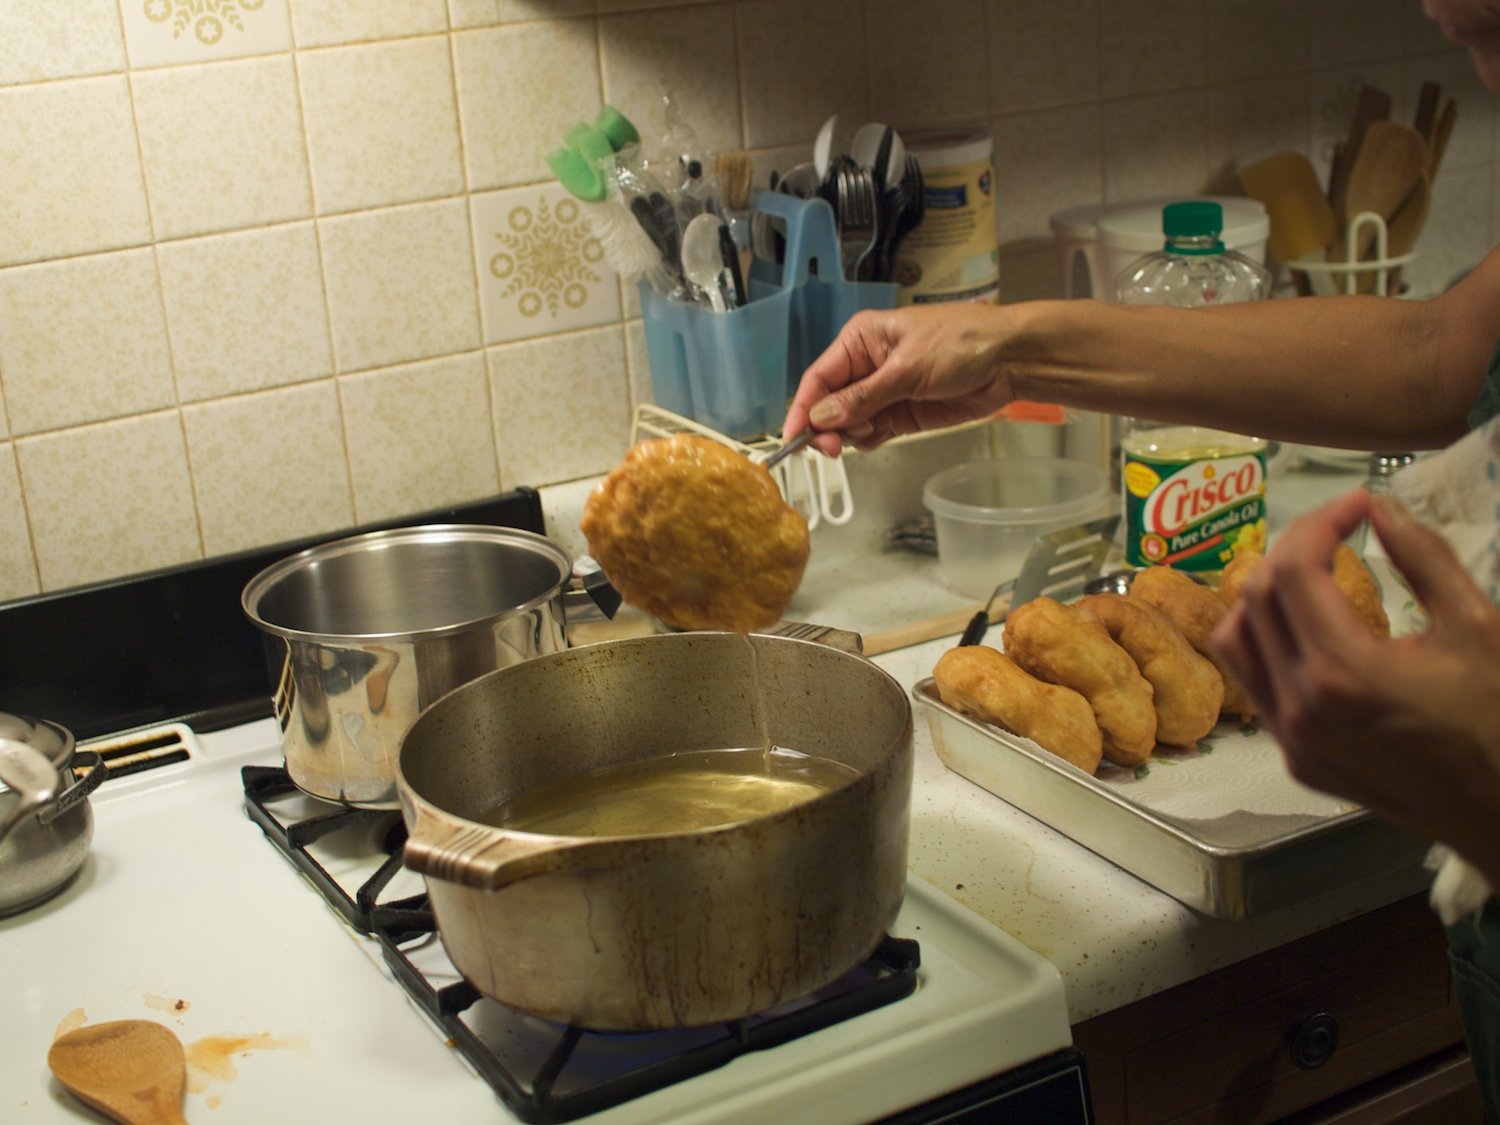 Ivan Star Comes Out: Fry bread is just another legacy of colonization